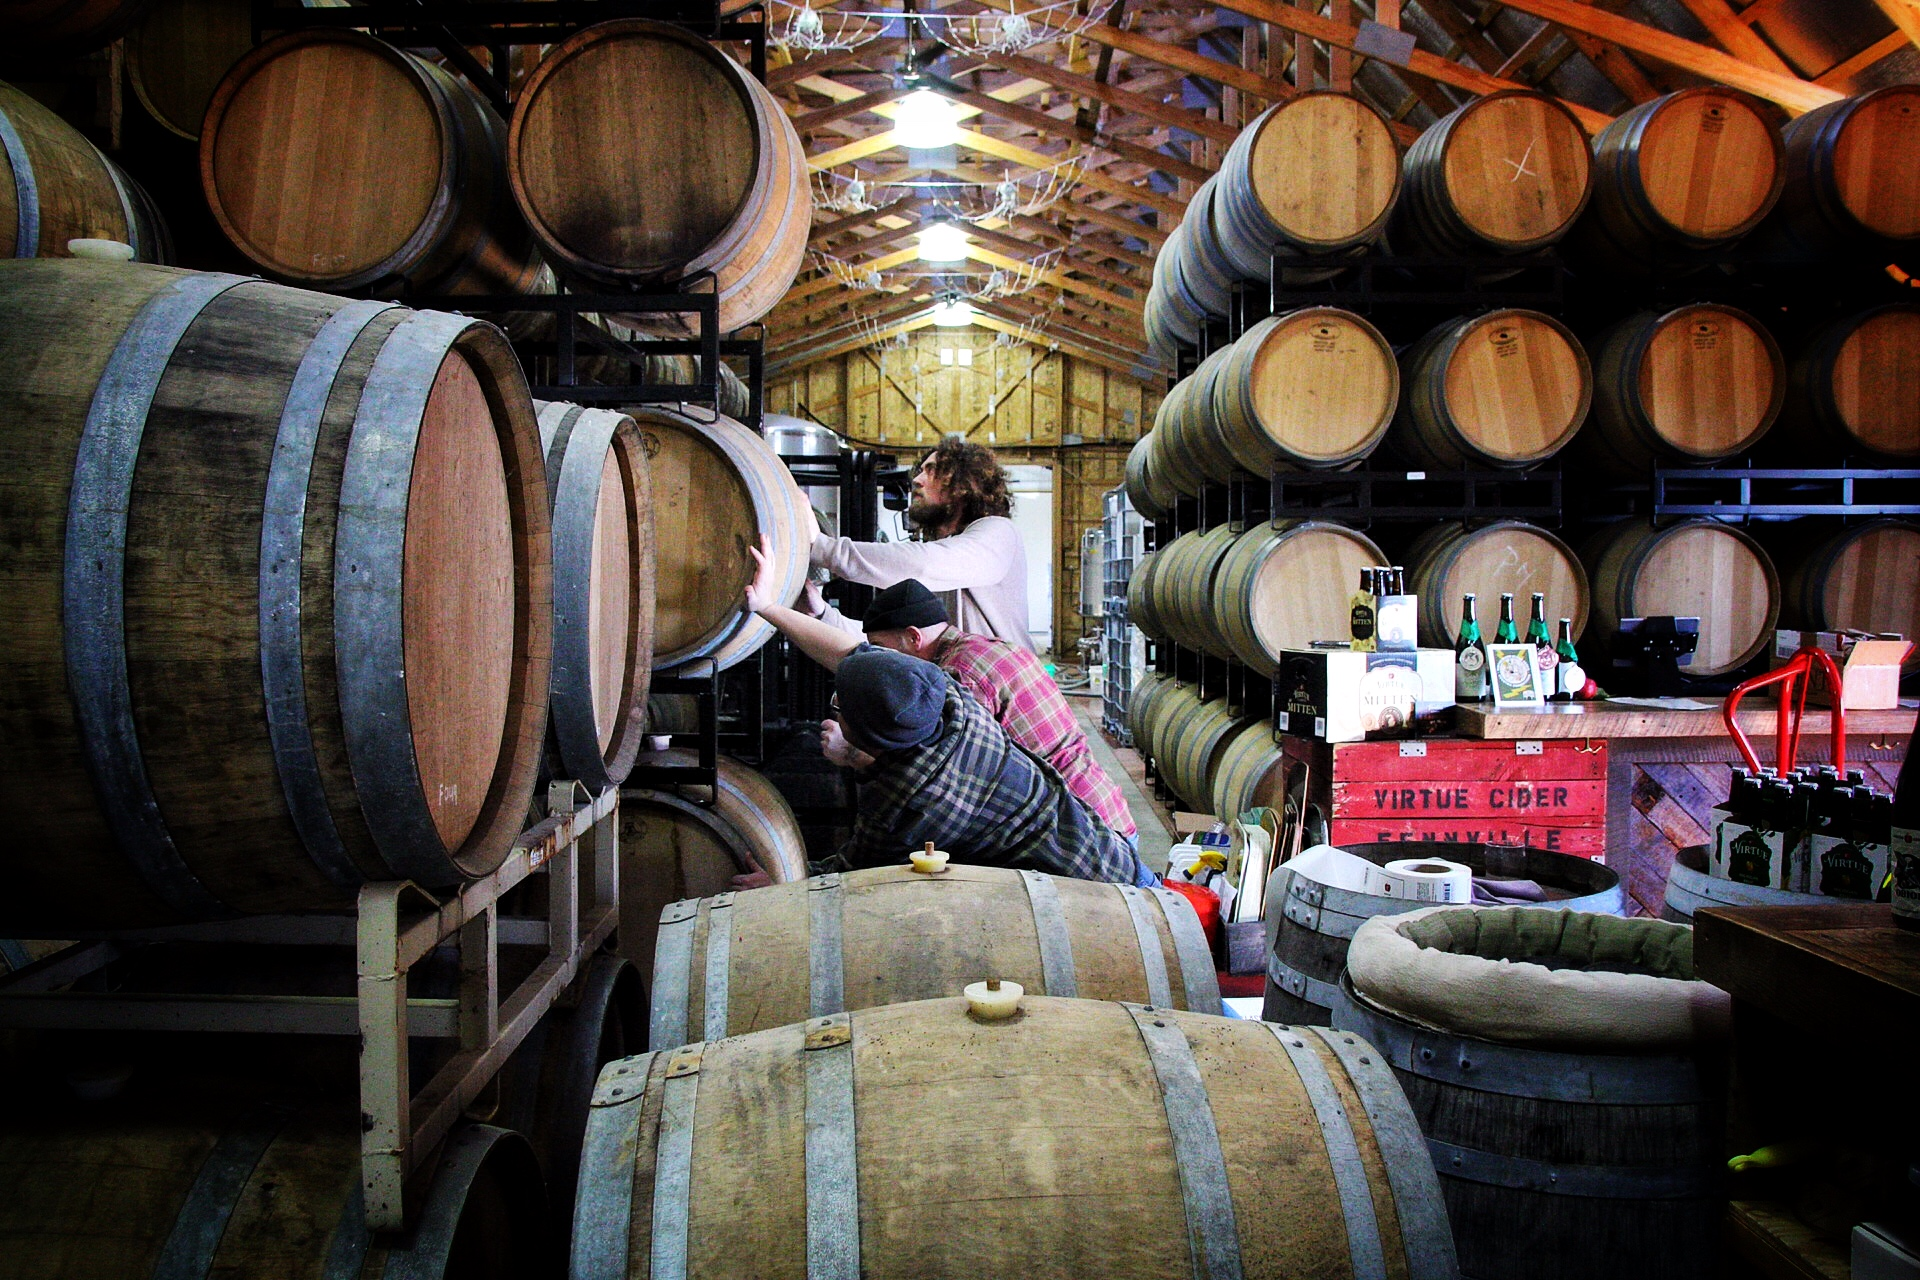 We age our cider in barrels in our cider house.